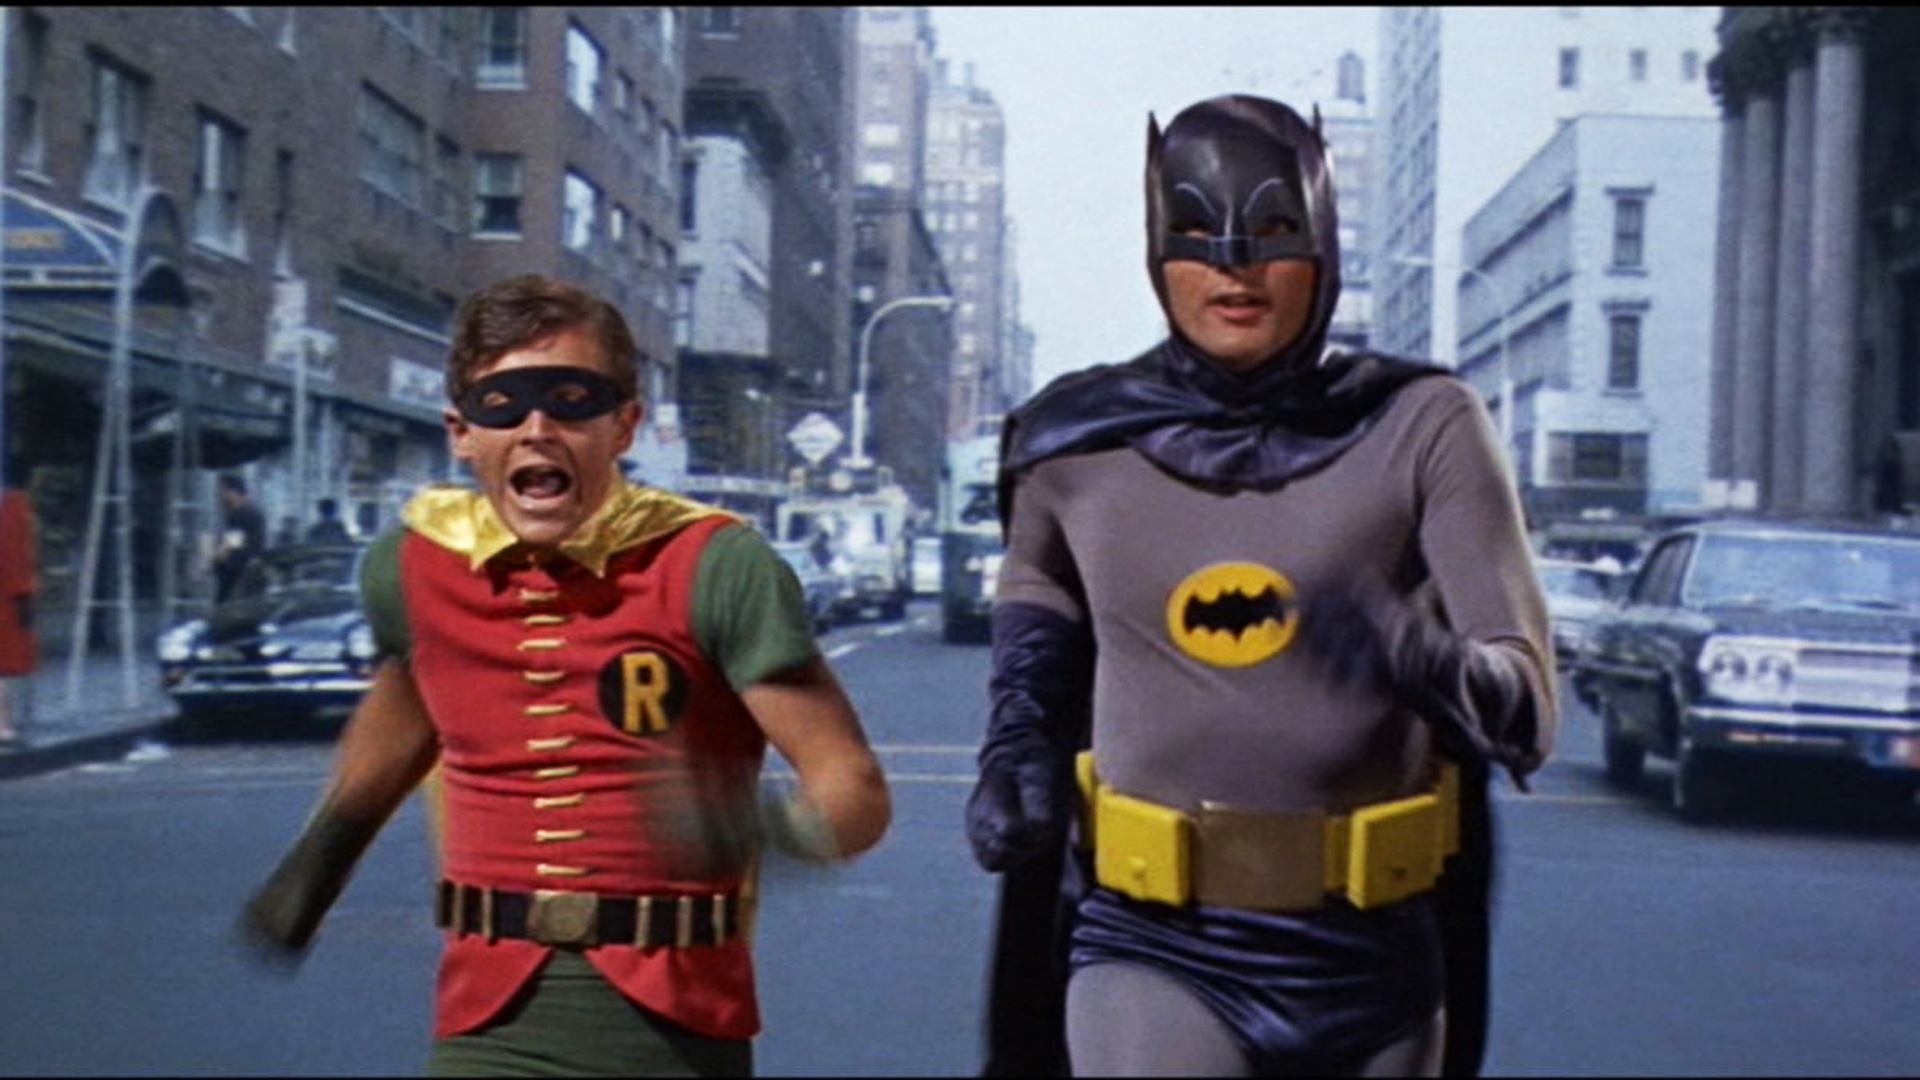 Yes, it's silly.Yes, it's campy, but by jove -it's fantastic! Batman 66 is bright, bold and unabashedly fun.While SUPERZEROES will be more sophisticated from a storytelling and character perspective,we still want it to be bright, colorful and full of spandex costumes.It also goes to show how versatile a character BATMAN is, which is something we want to instill into the characters of SUPERZEROES.